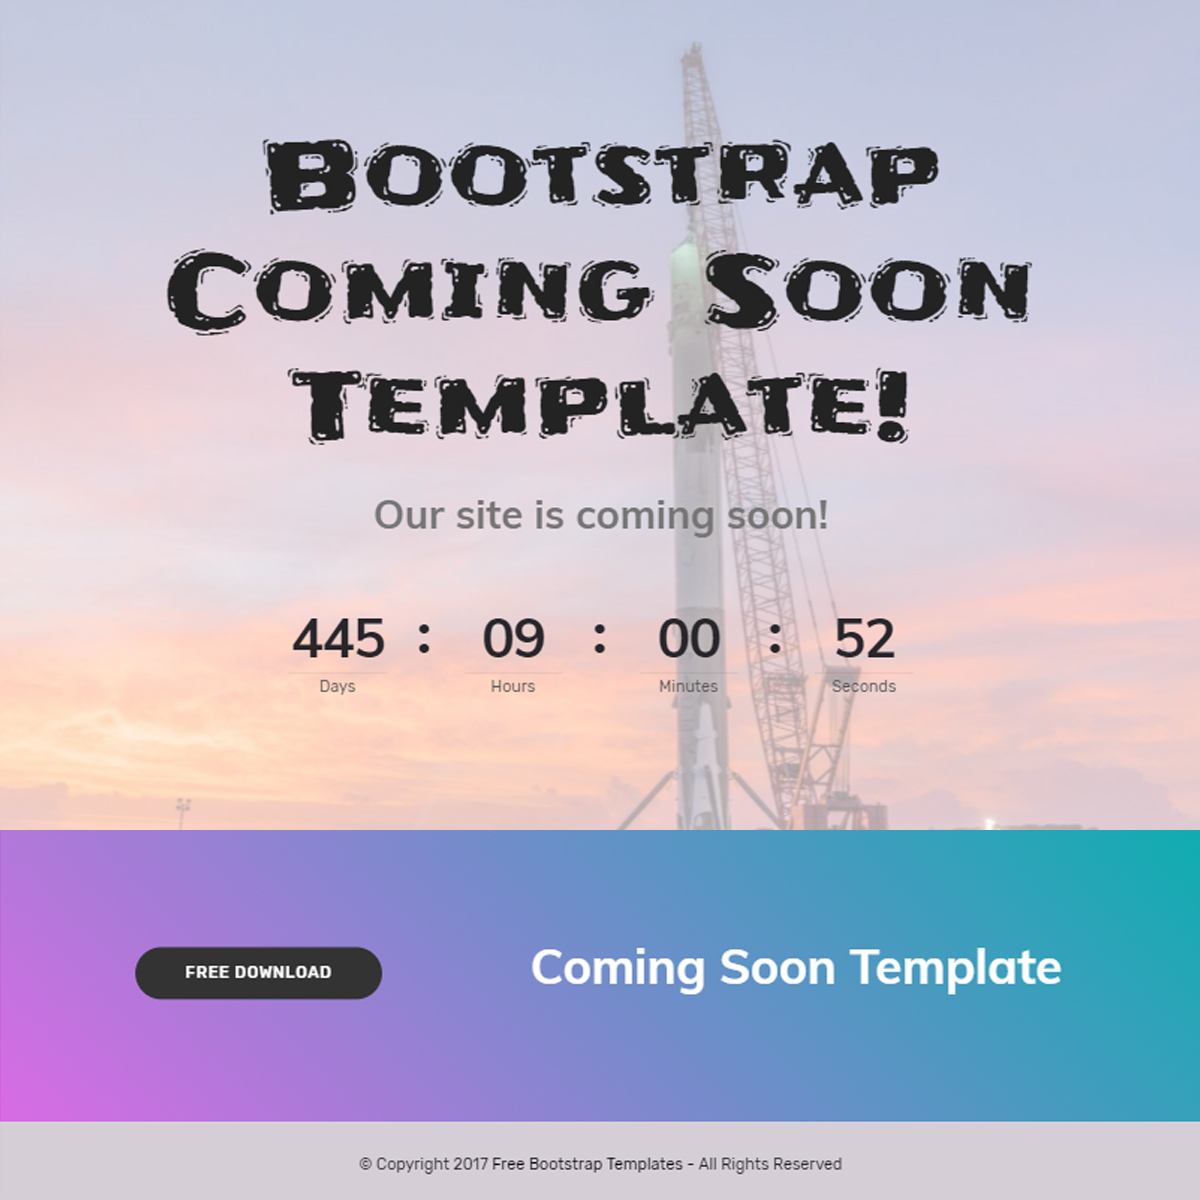 free bootstrap templates 2016 - 33 awesome free html5 bootstrap templates 2018